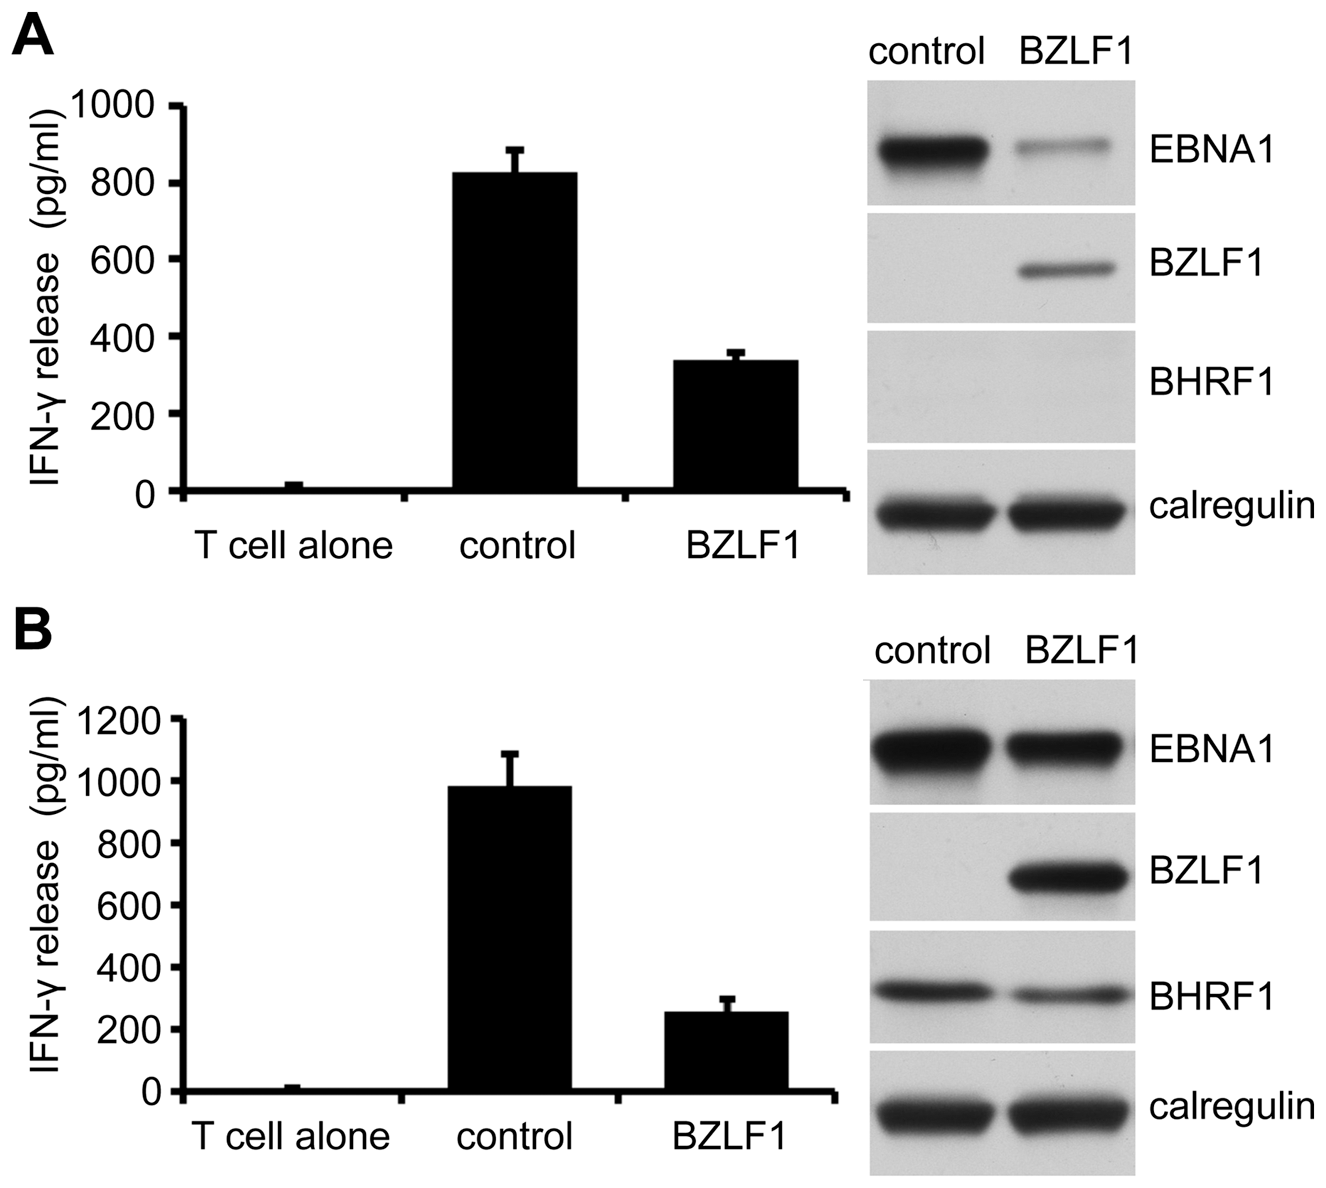 Inhibition of CD4<sup>+</sup> T cell recognition by BZLF1 is retained when toxicity is reversed by BHRF1.